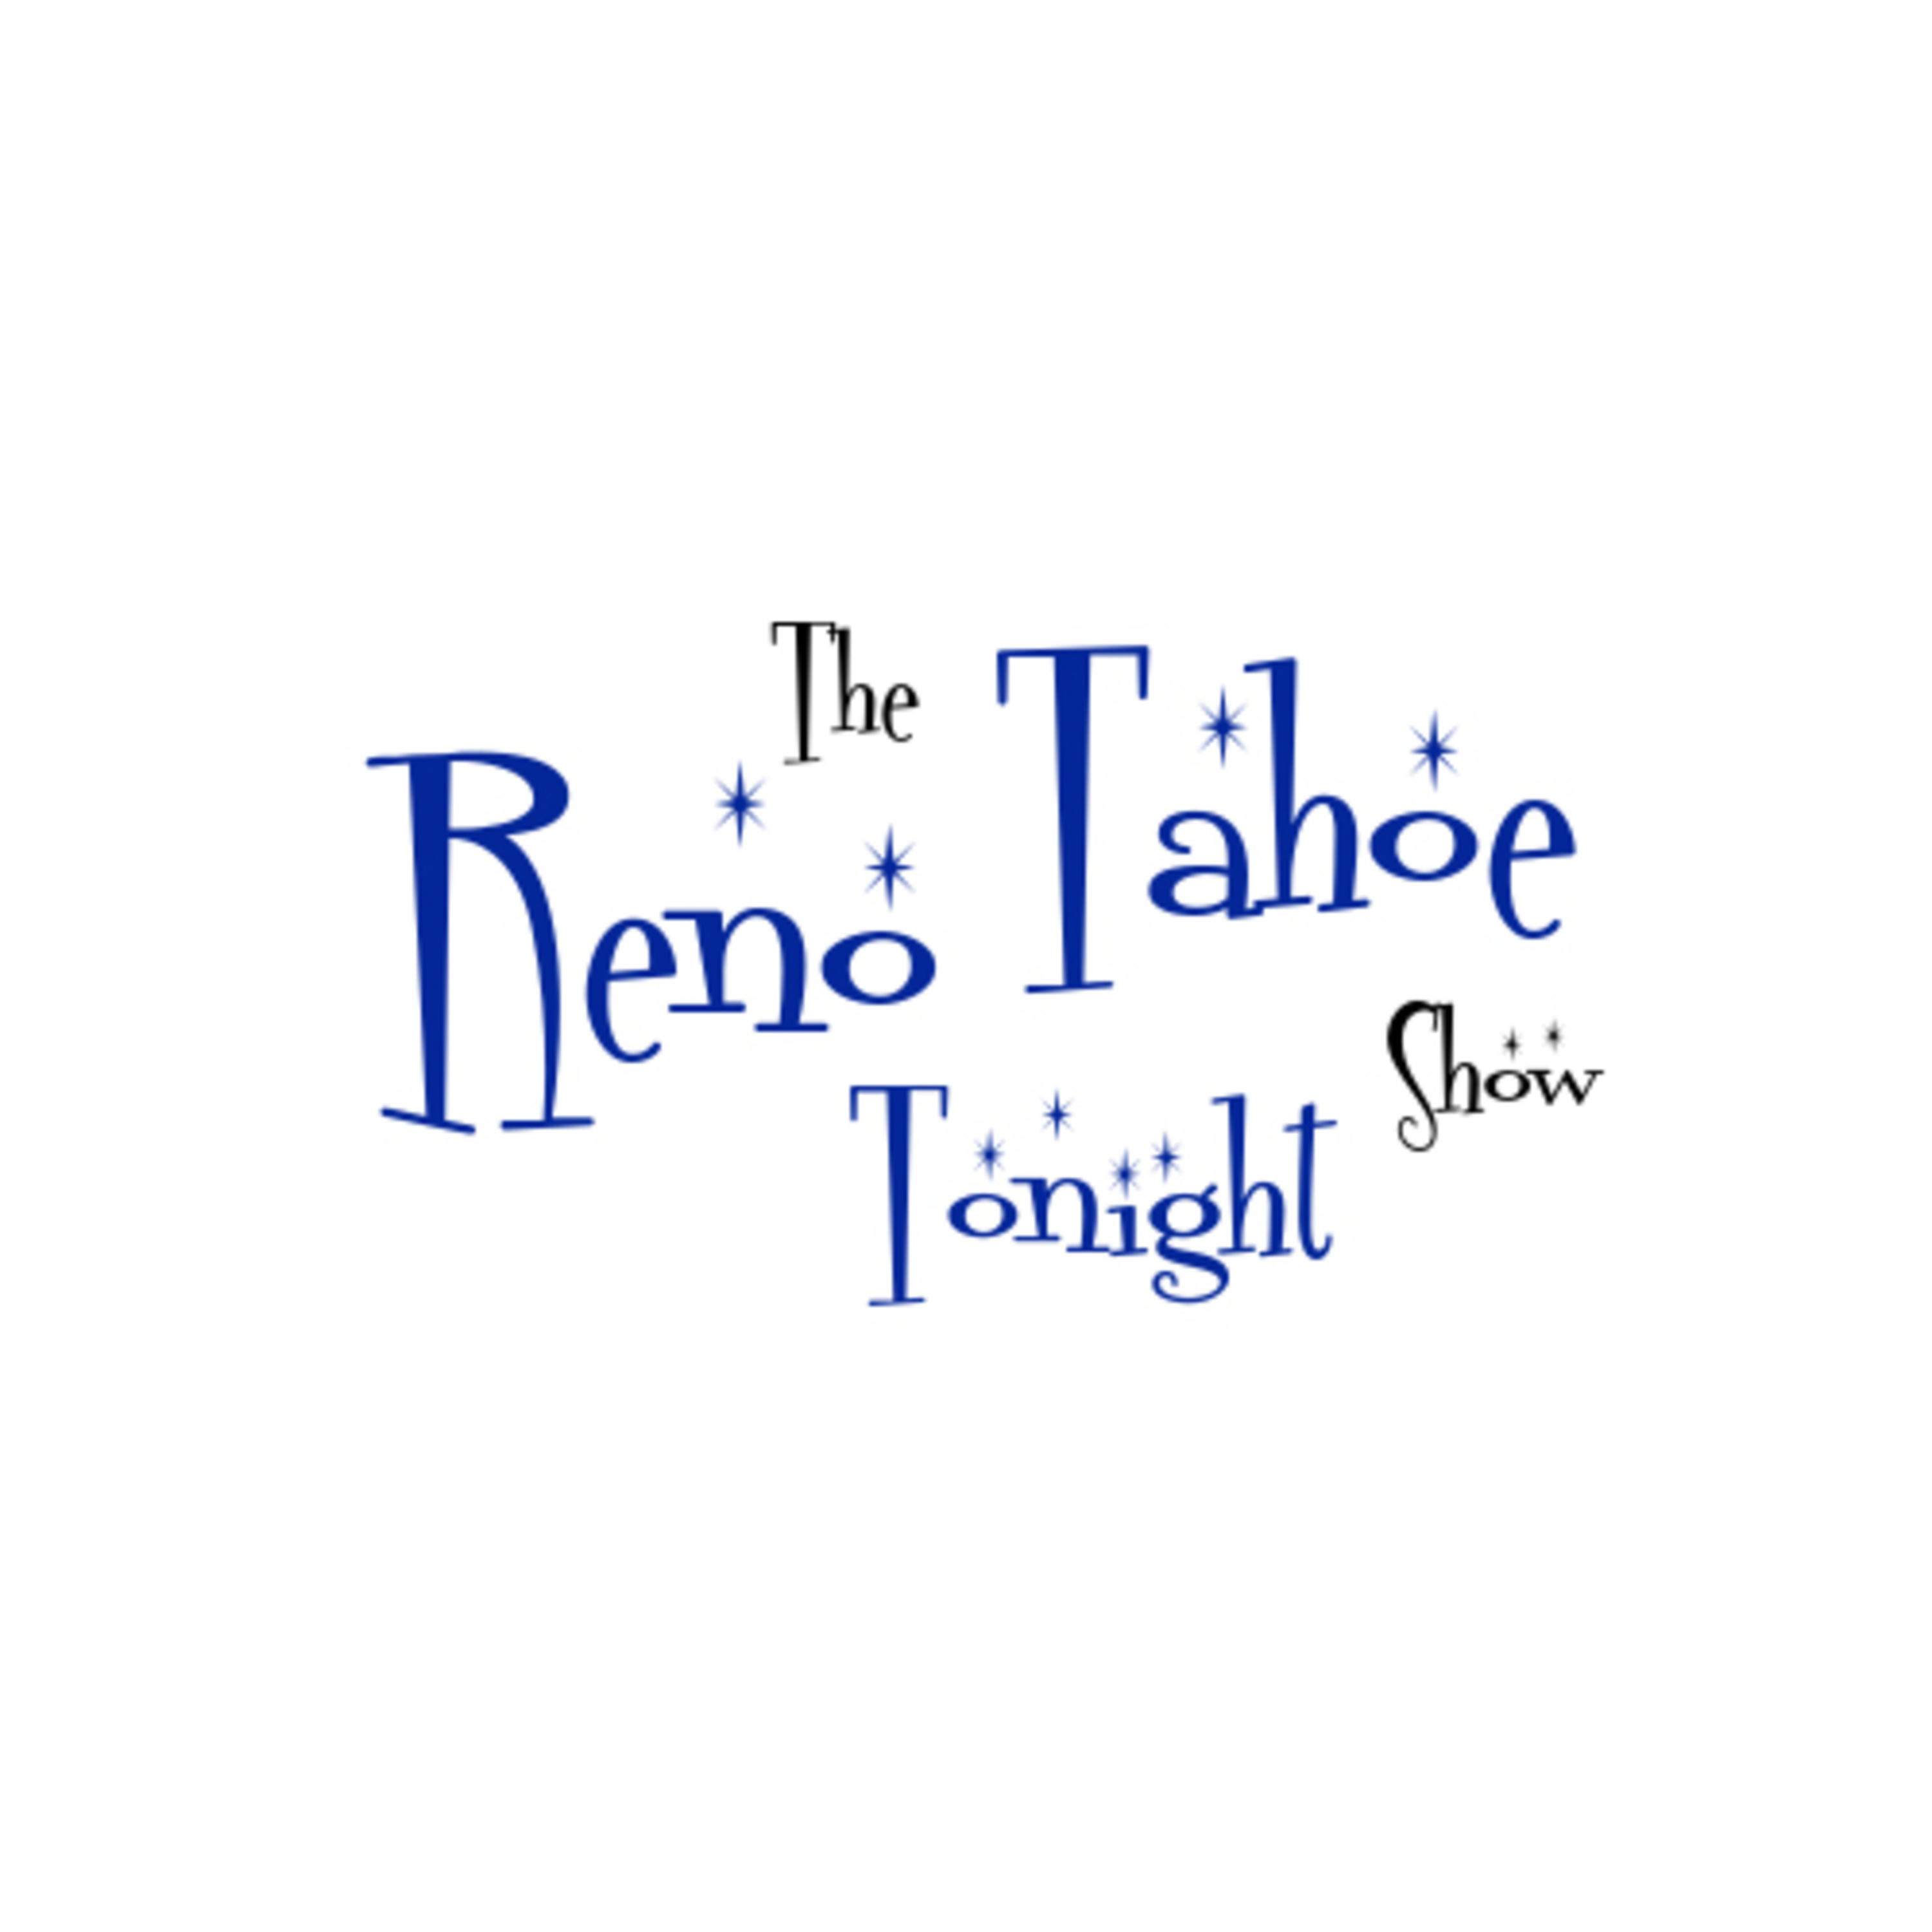 The Reno Tahoe Tonight Show: Beauty Tuesday with Reno Blow Dry Bar and Crowned by Tara Brown 04/28/20